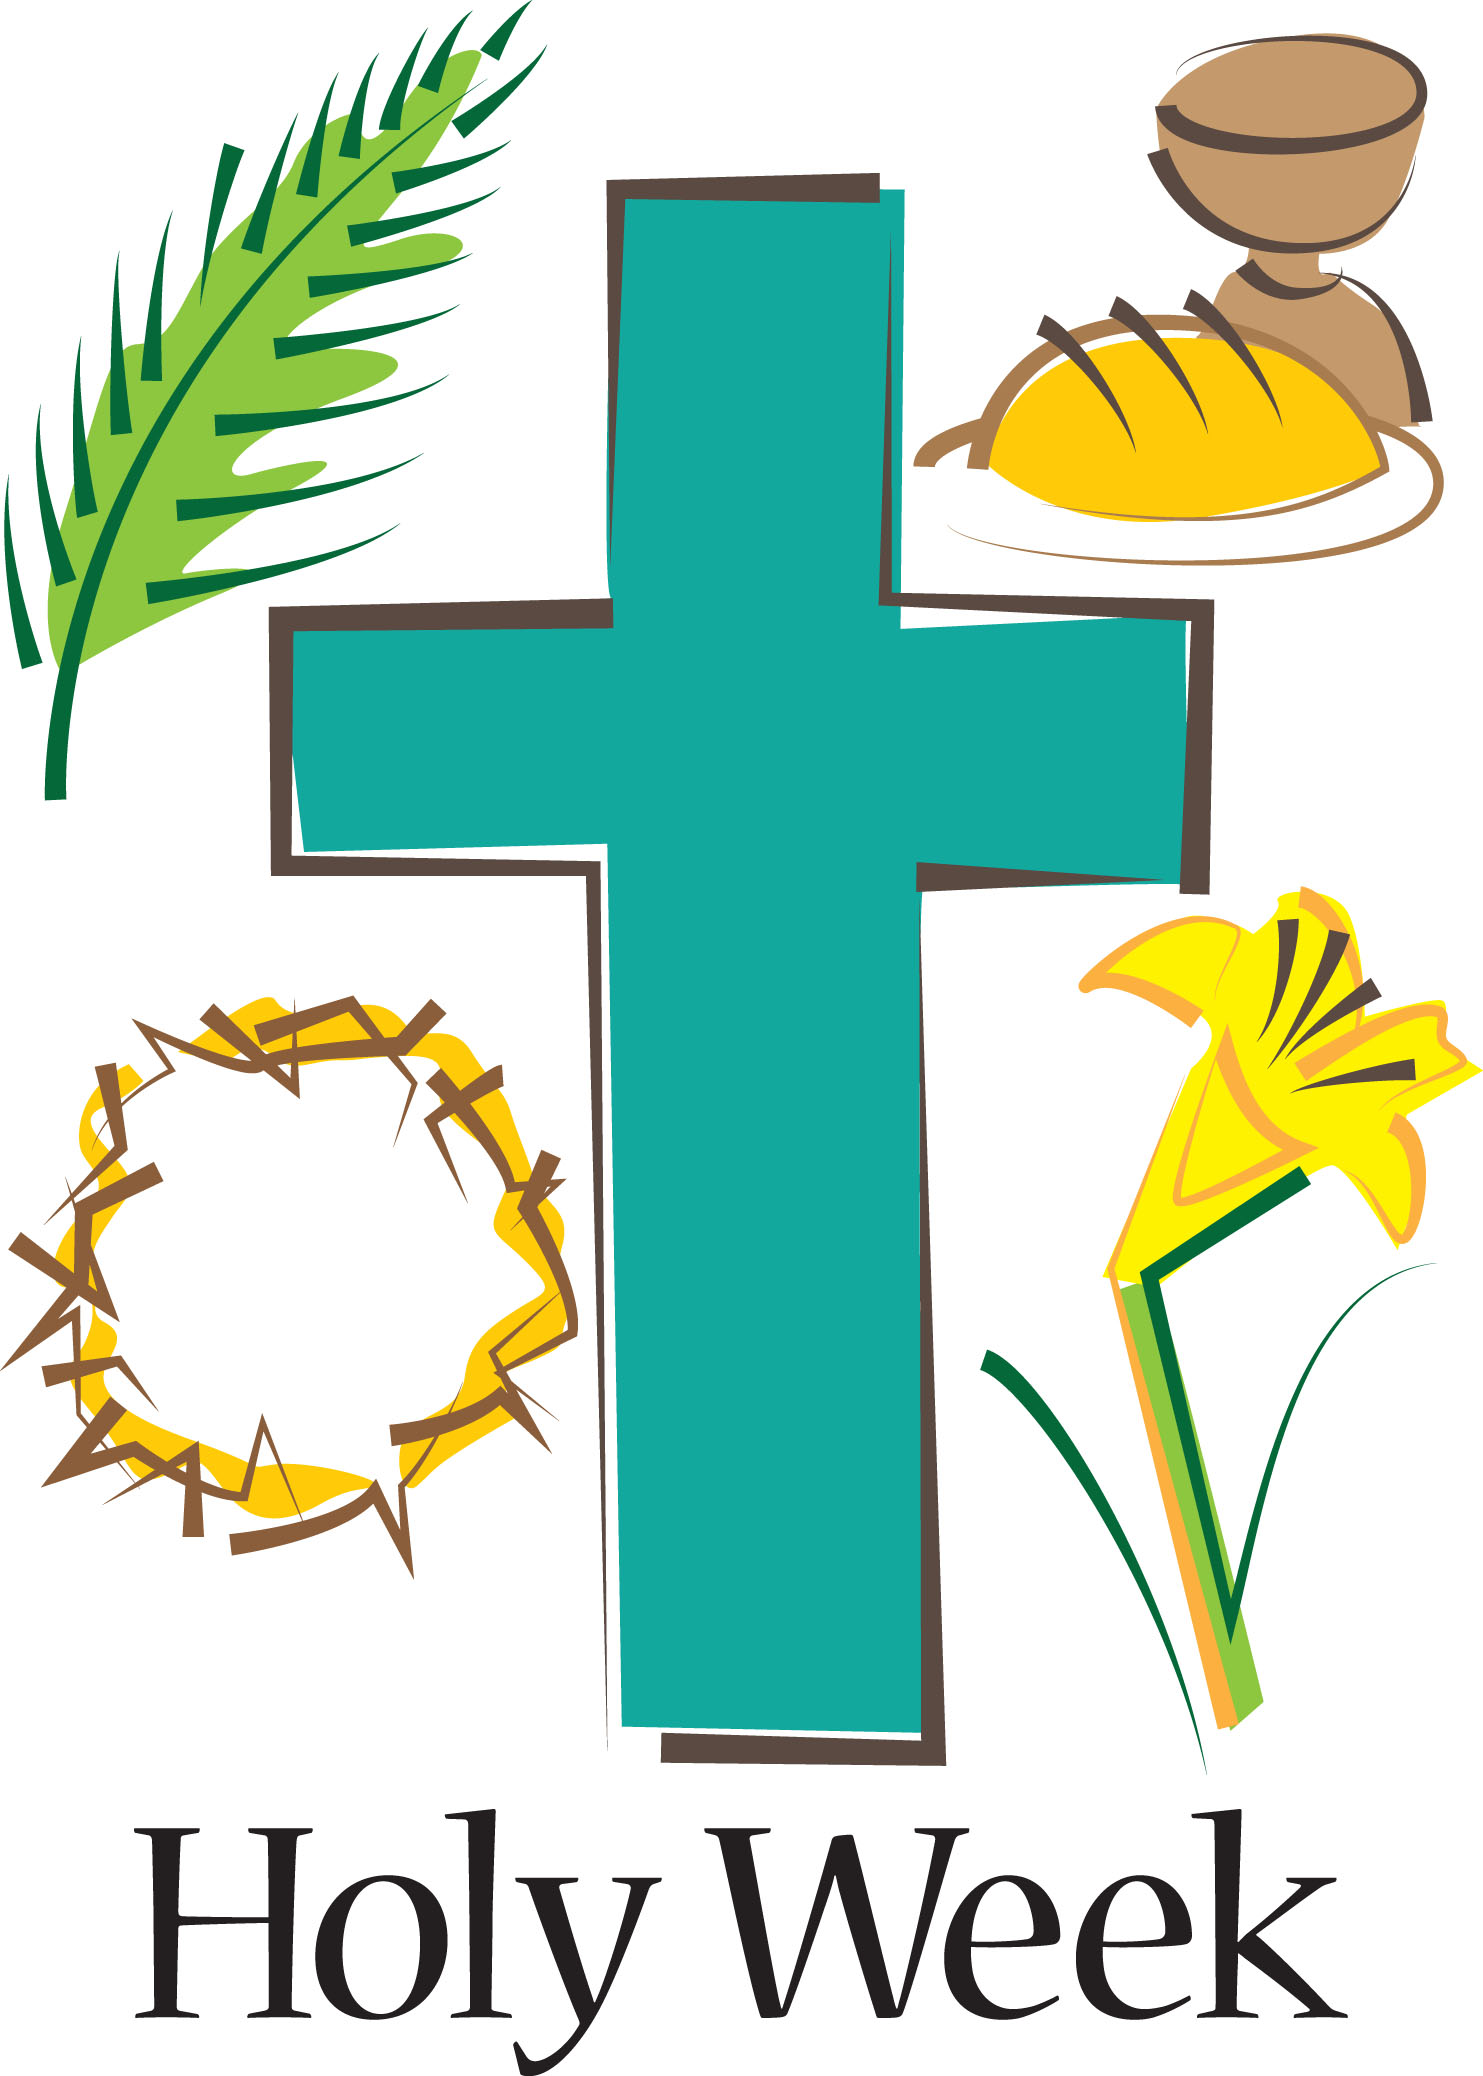 Lent and holy week services messiah lutheran church lent and holy week services biocorpaavc